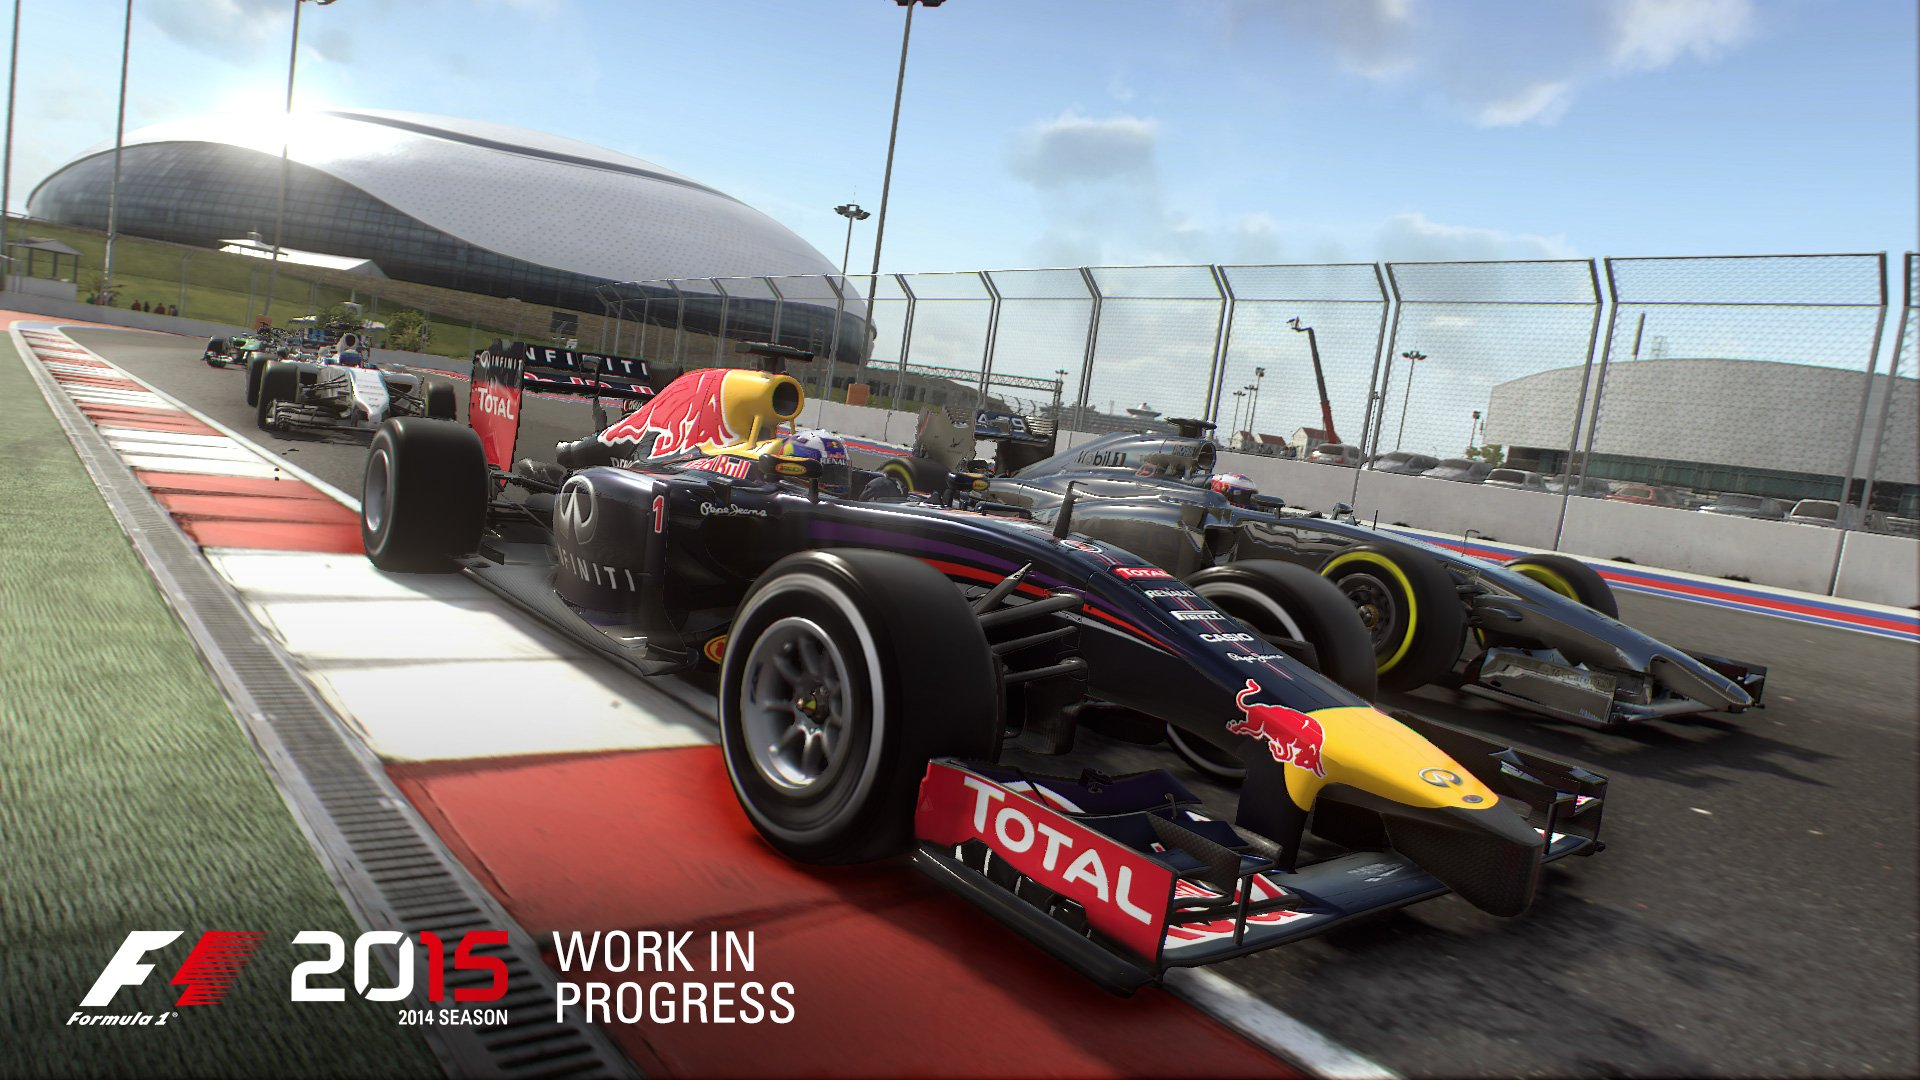 F1 2014 download pc | Download F1 2014  2019-05-06